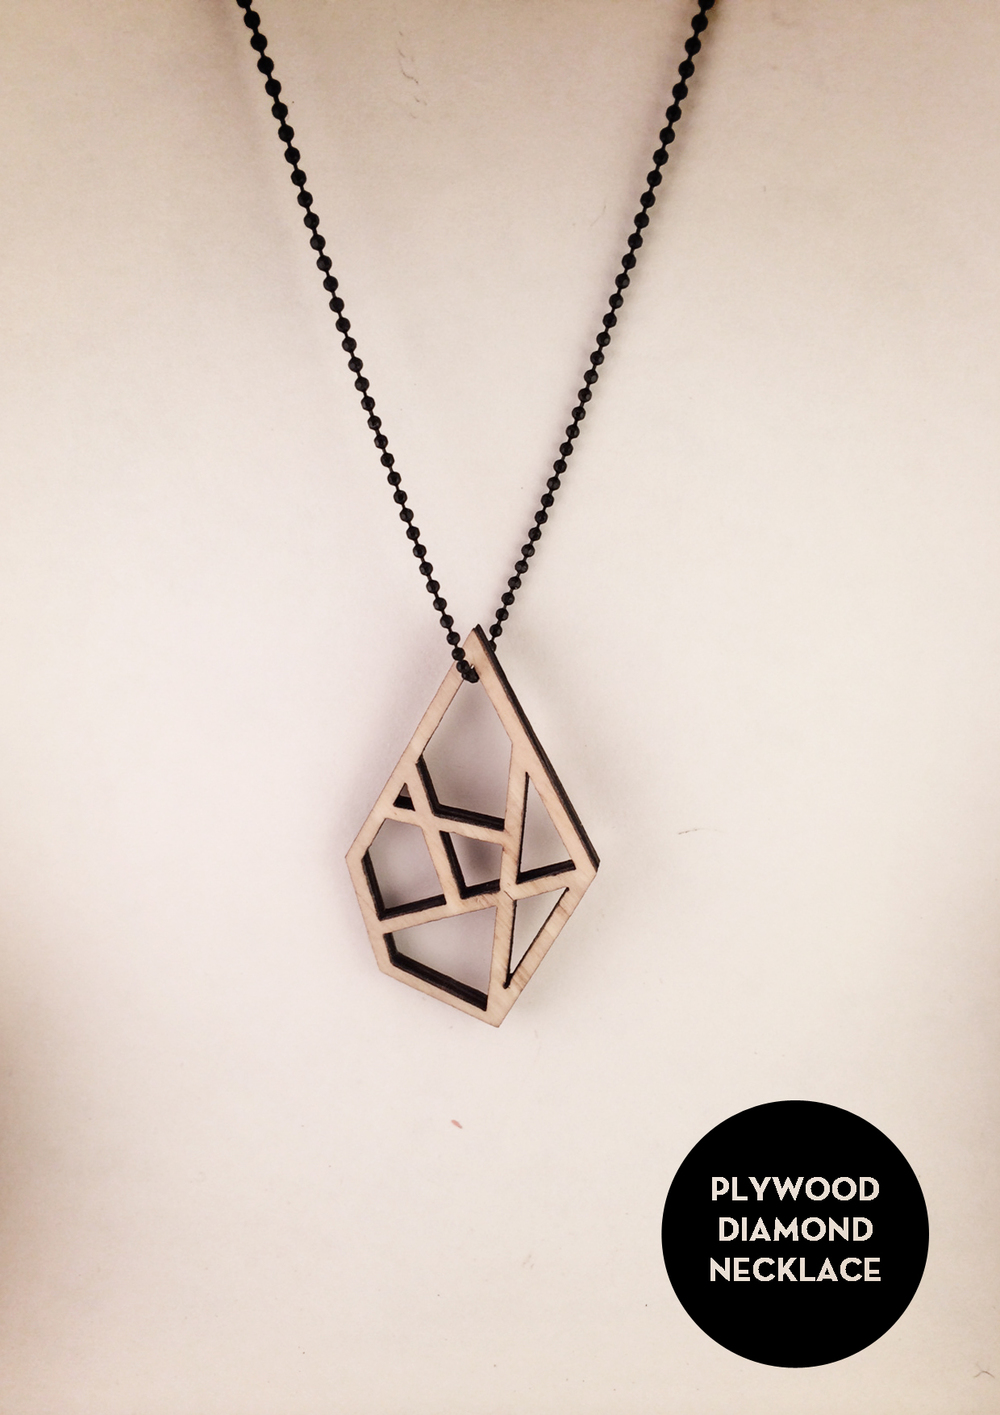 plywood necklace diamond byANOUK